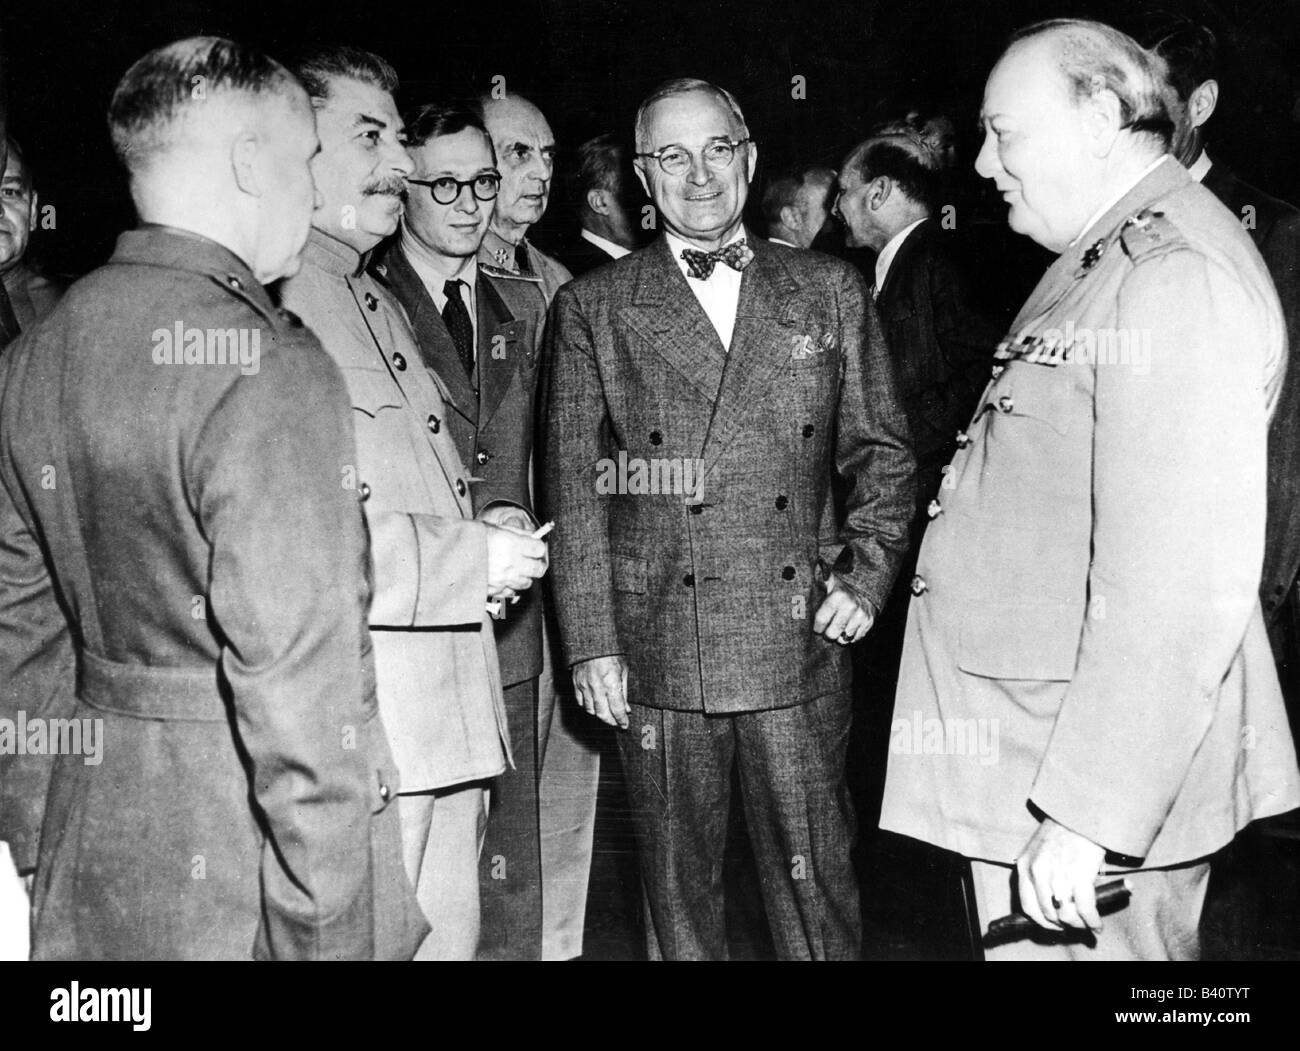 events, Second World War / WWII, conferences, Potsdam Conference 17.7.1945 - 2.8.1945, Joseph Stalin, Harry S. Truman - Stock Image